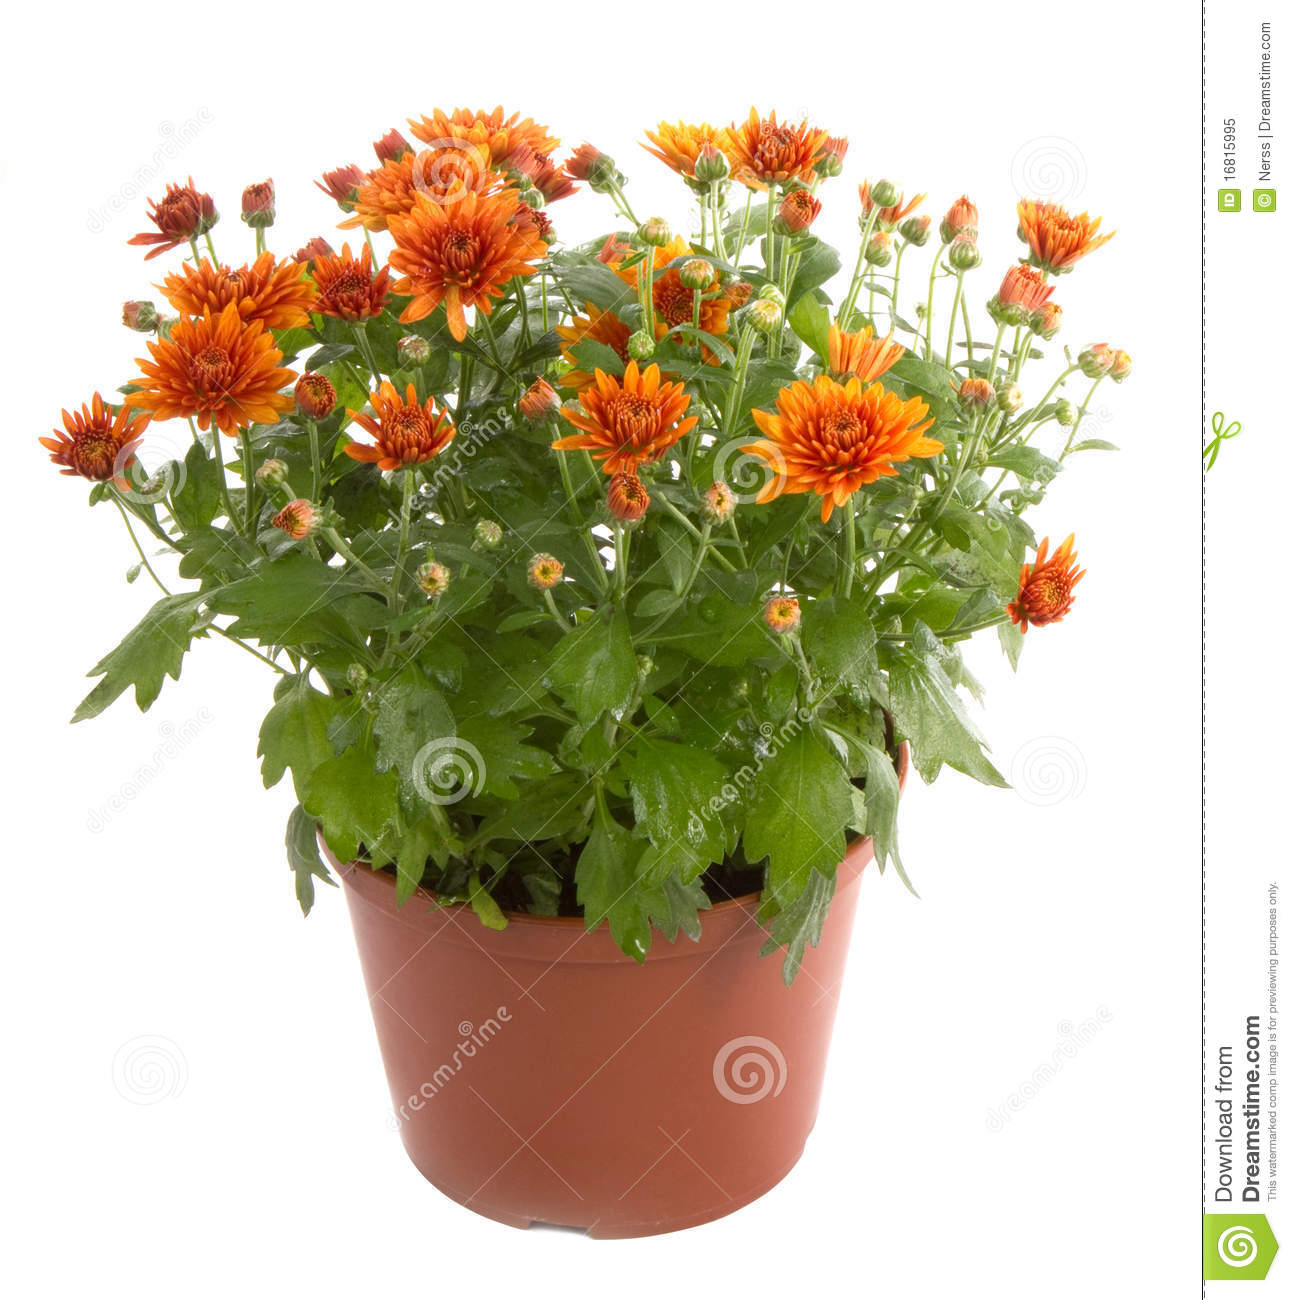 Chrysanthemum flower royalty free stock photo image 16815995 - Potted autumn flowers ...